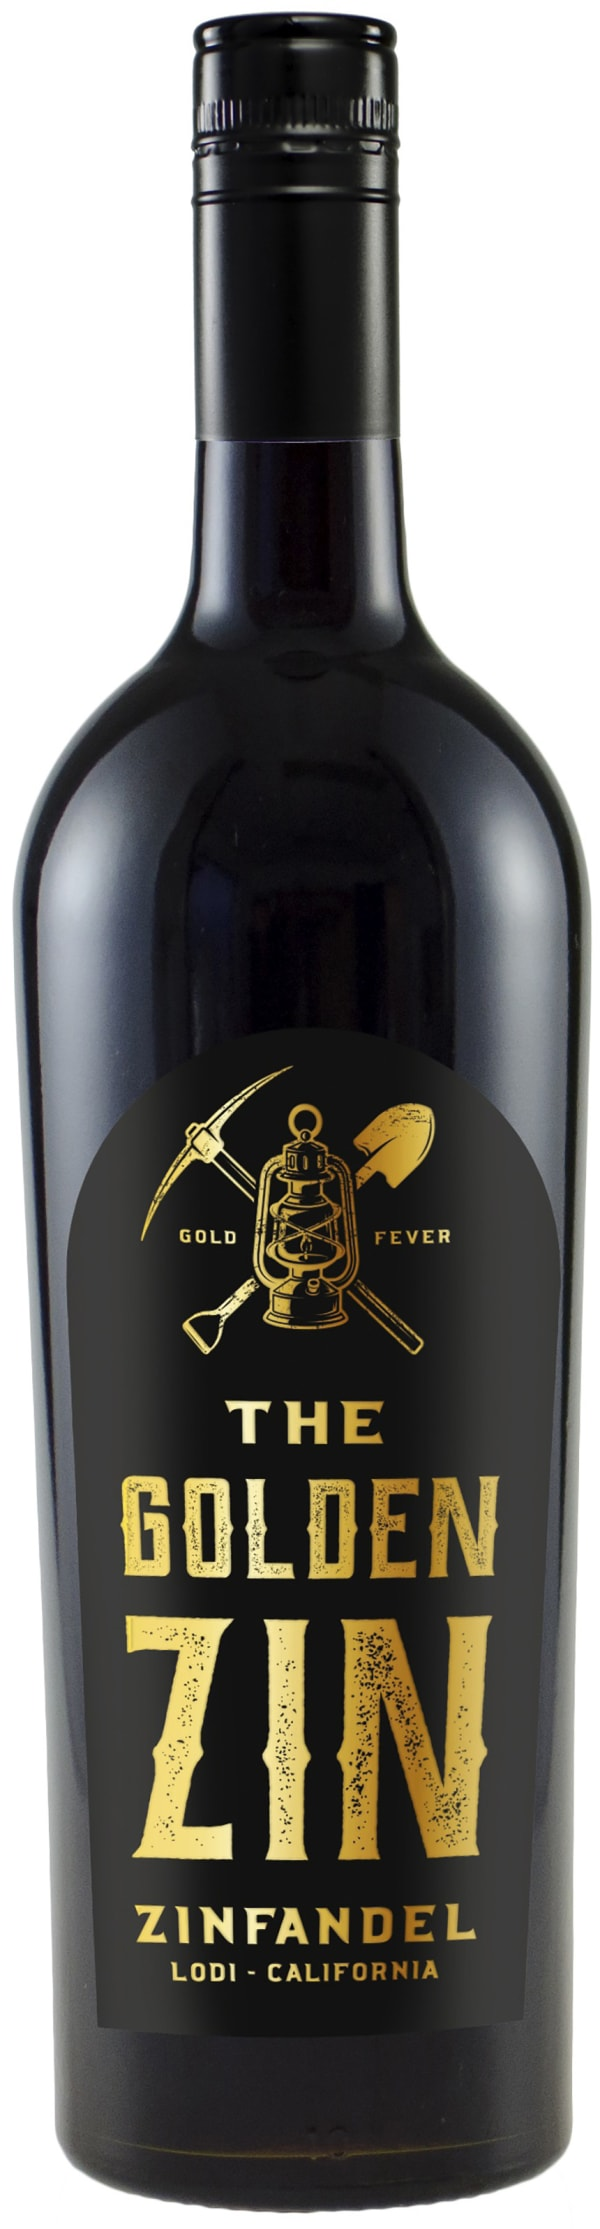 The Golden Zin Zinfandel 2018